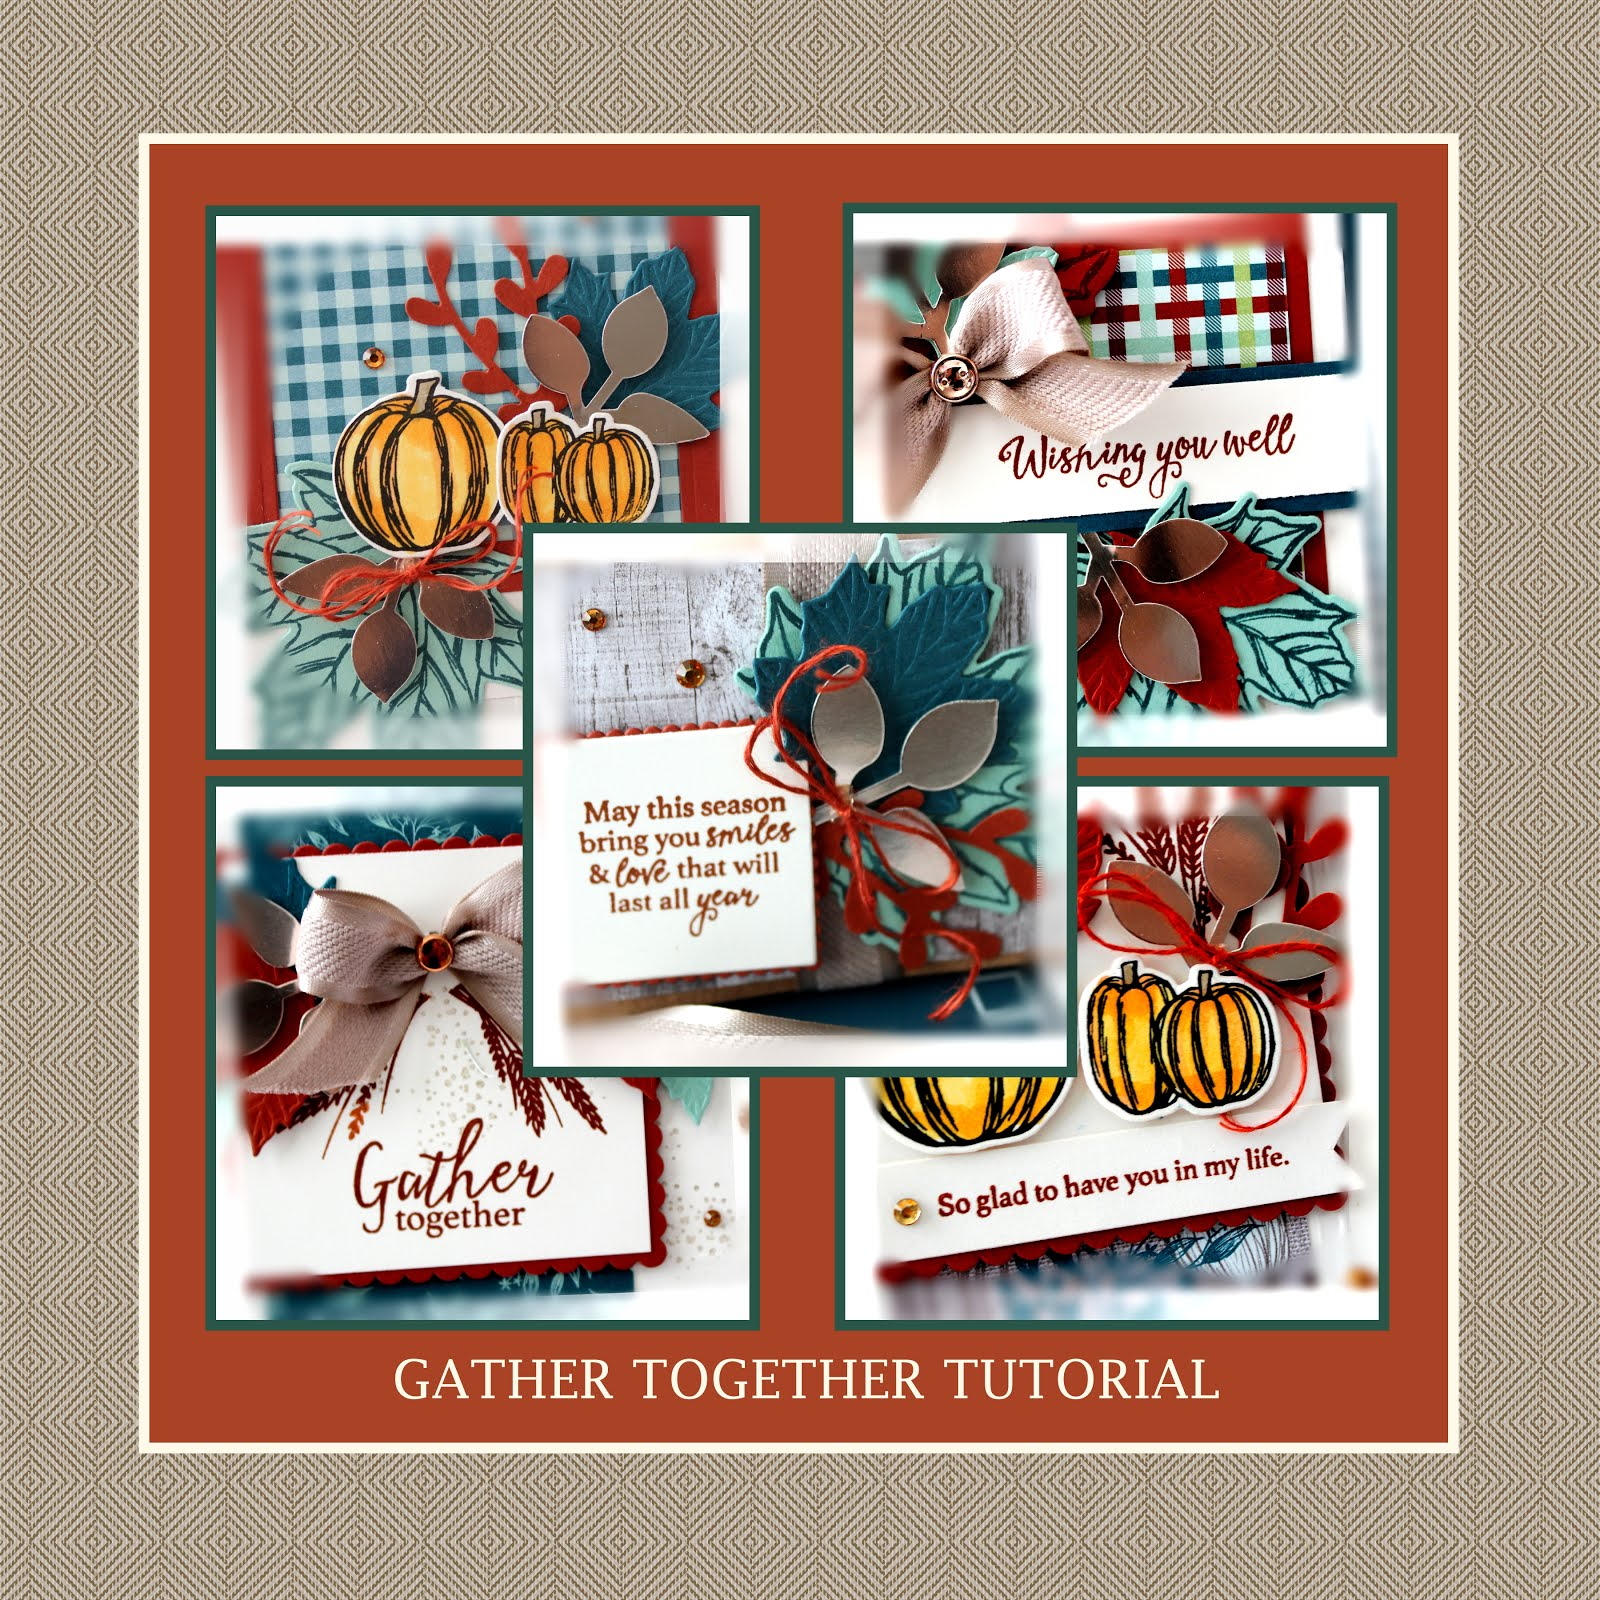 October 2019 Gather Together Tutorial